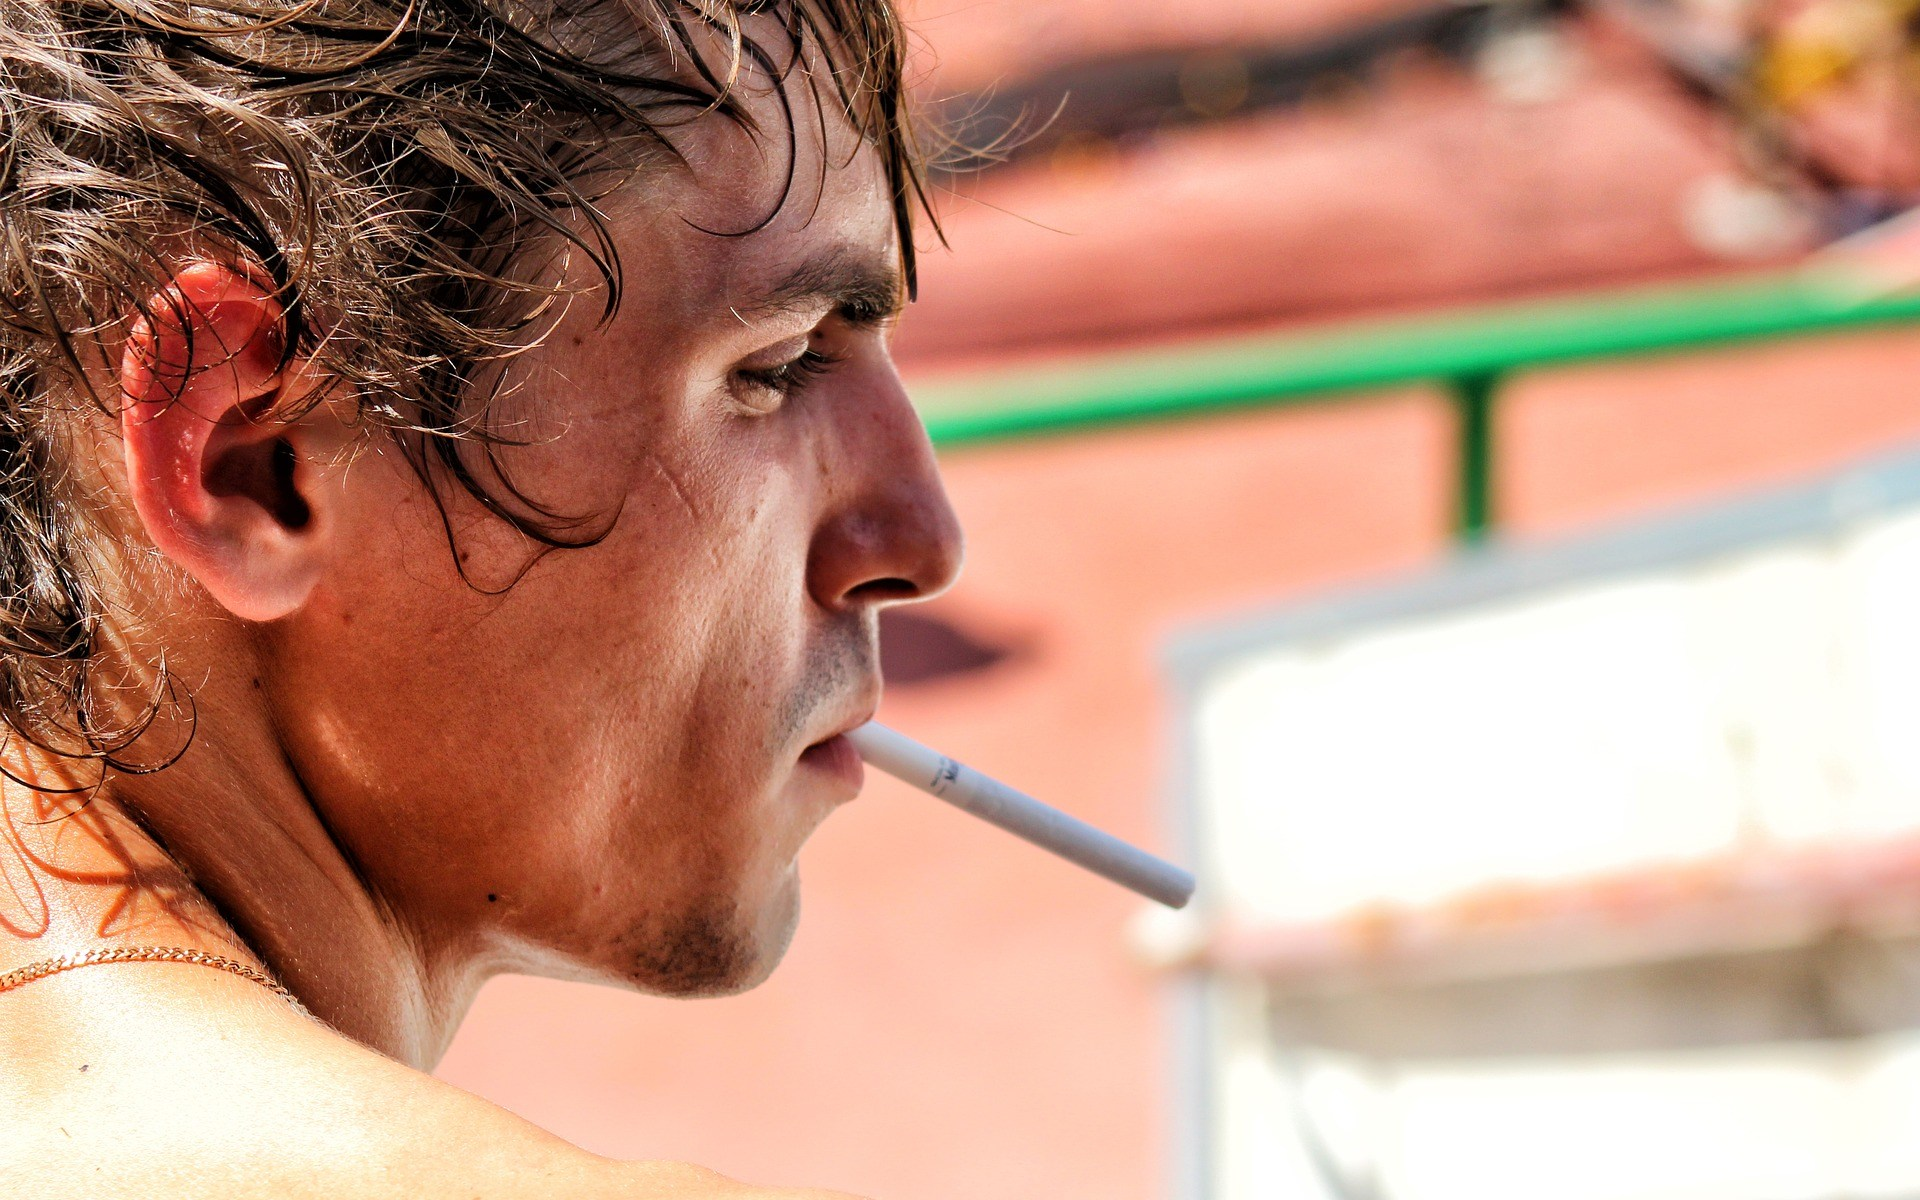 White man with gold chain on neck smoking cigarette